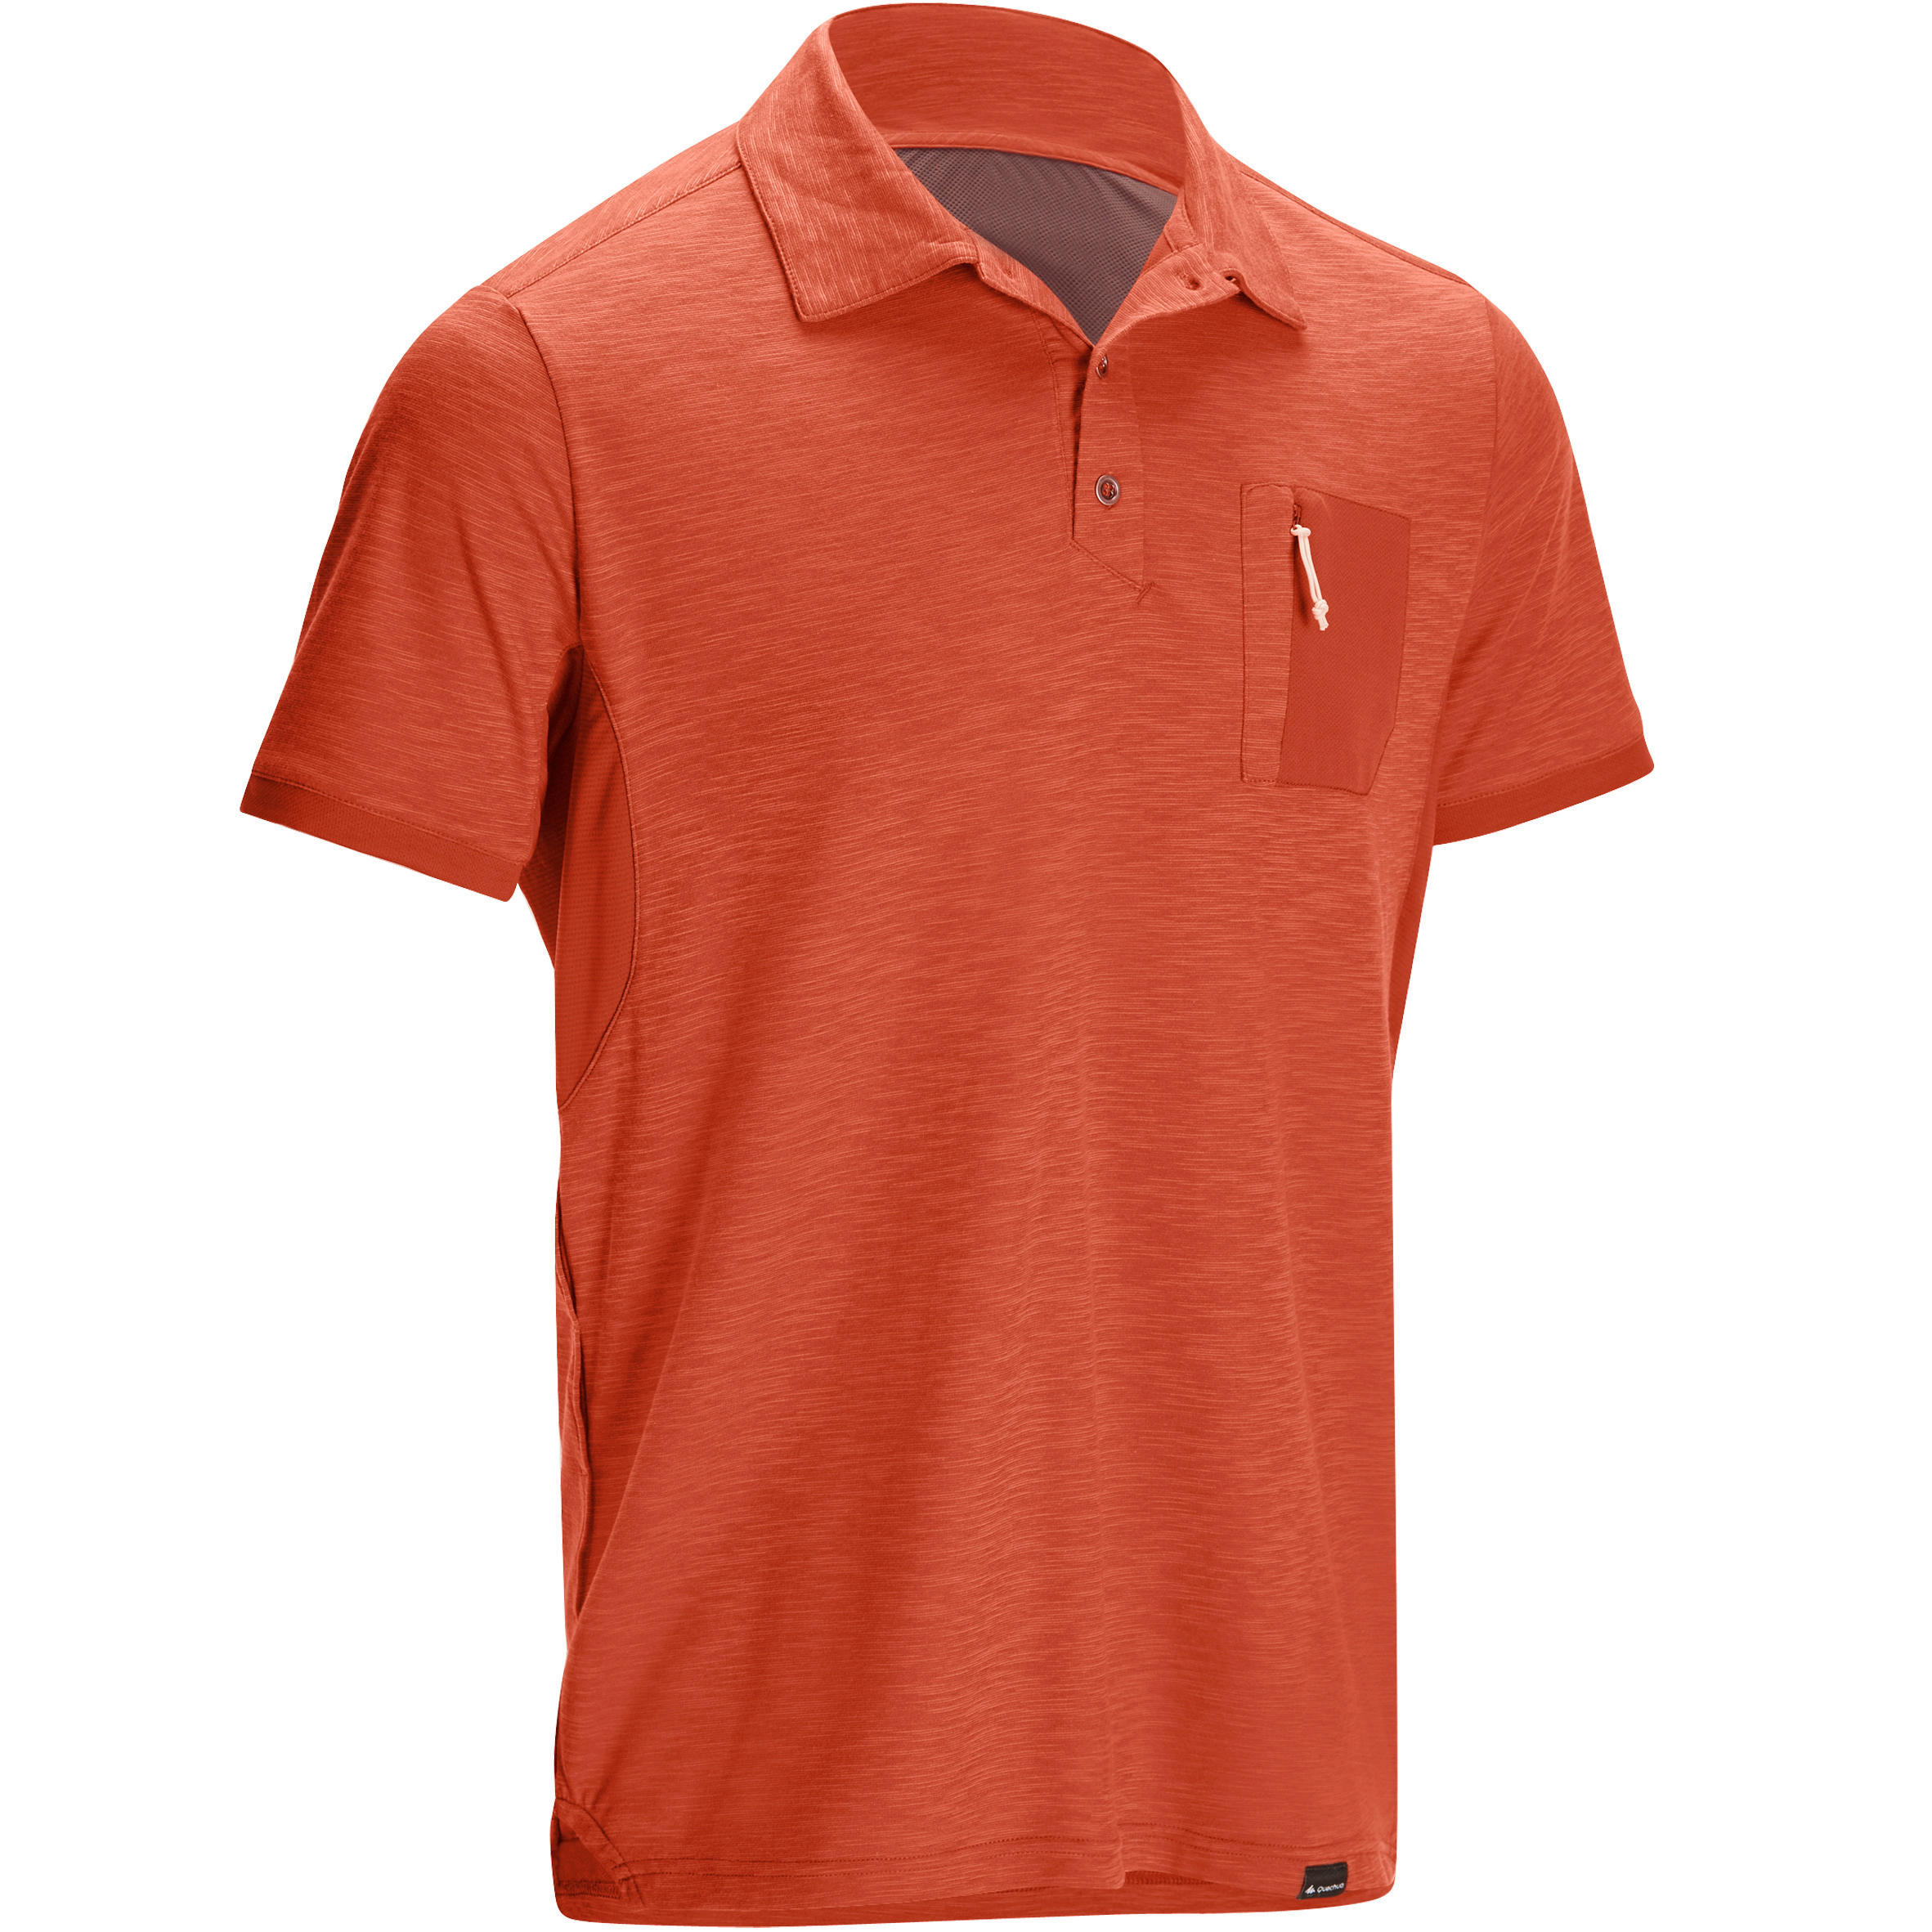 Arpenaz 500 Men's Hiking Short Sleeve Polo - Red